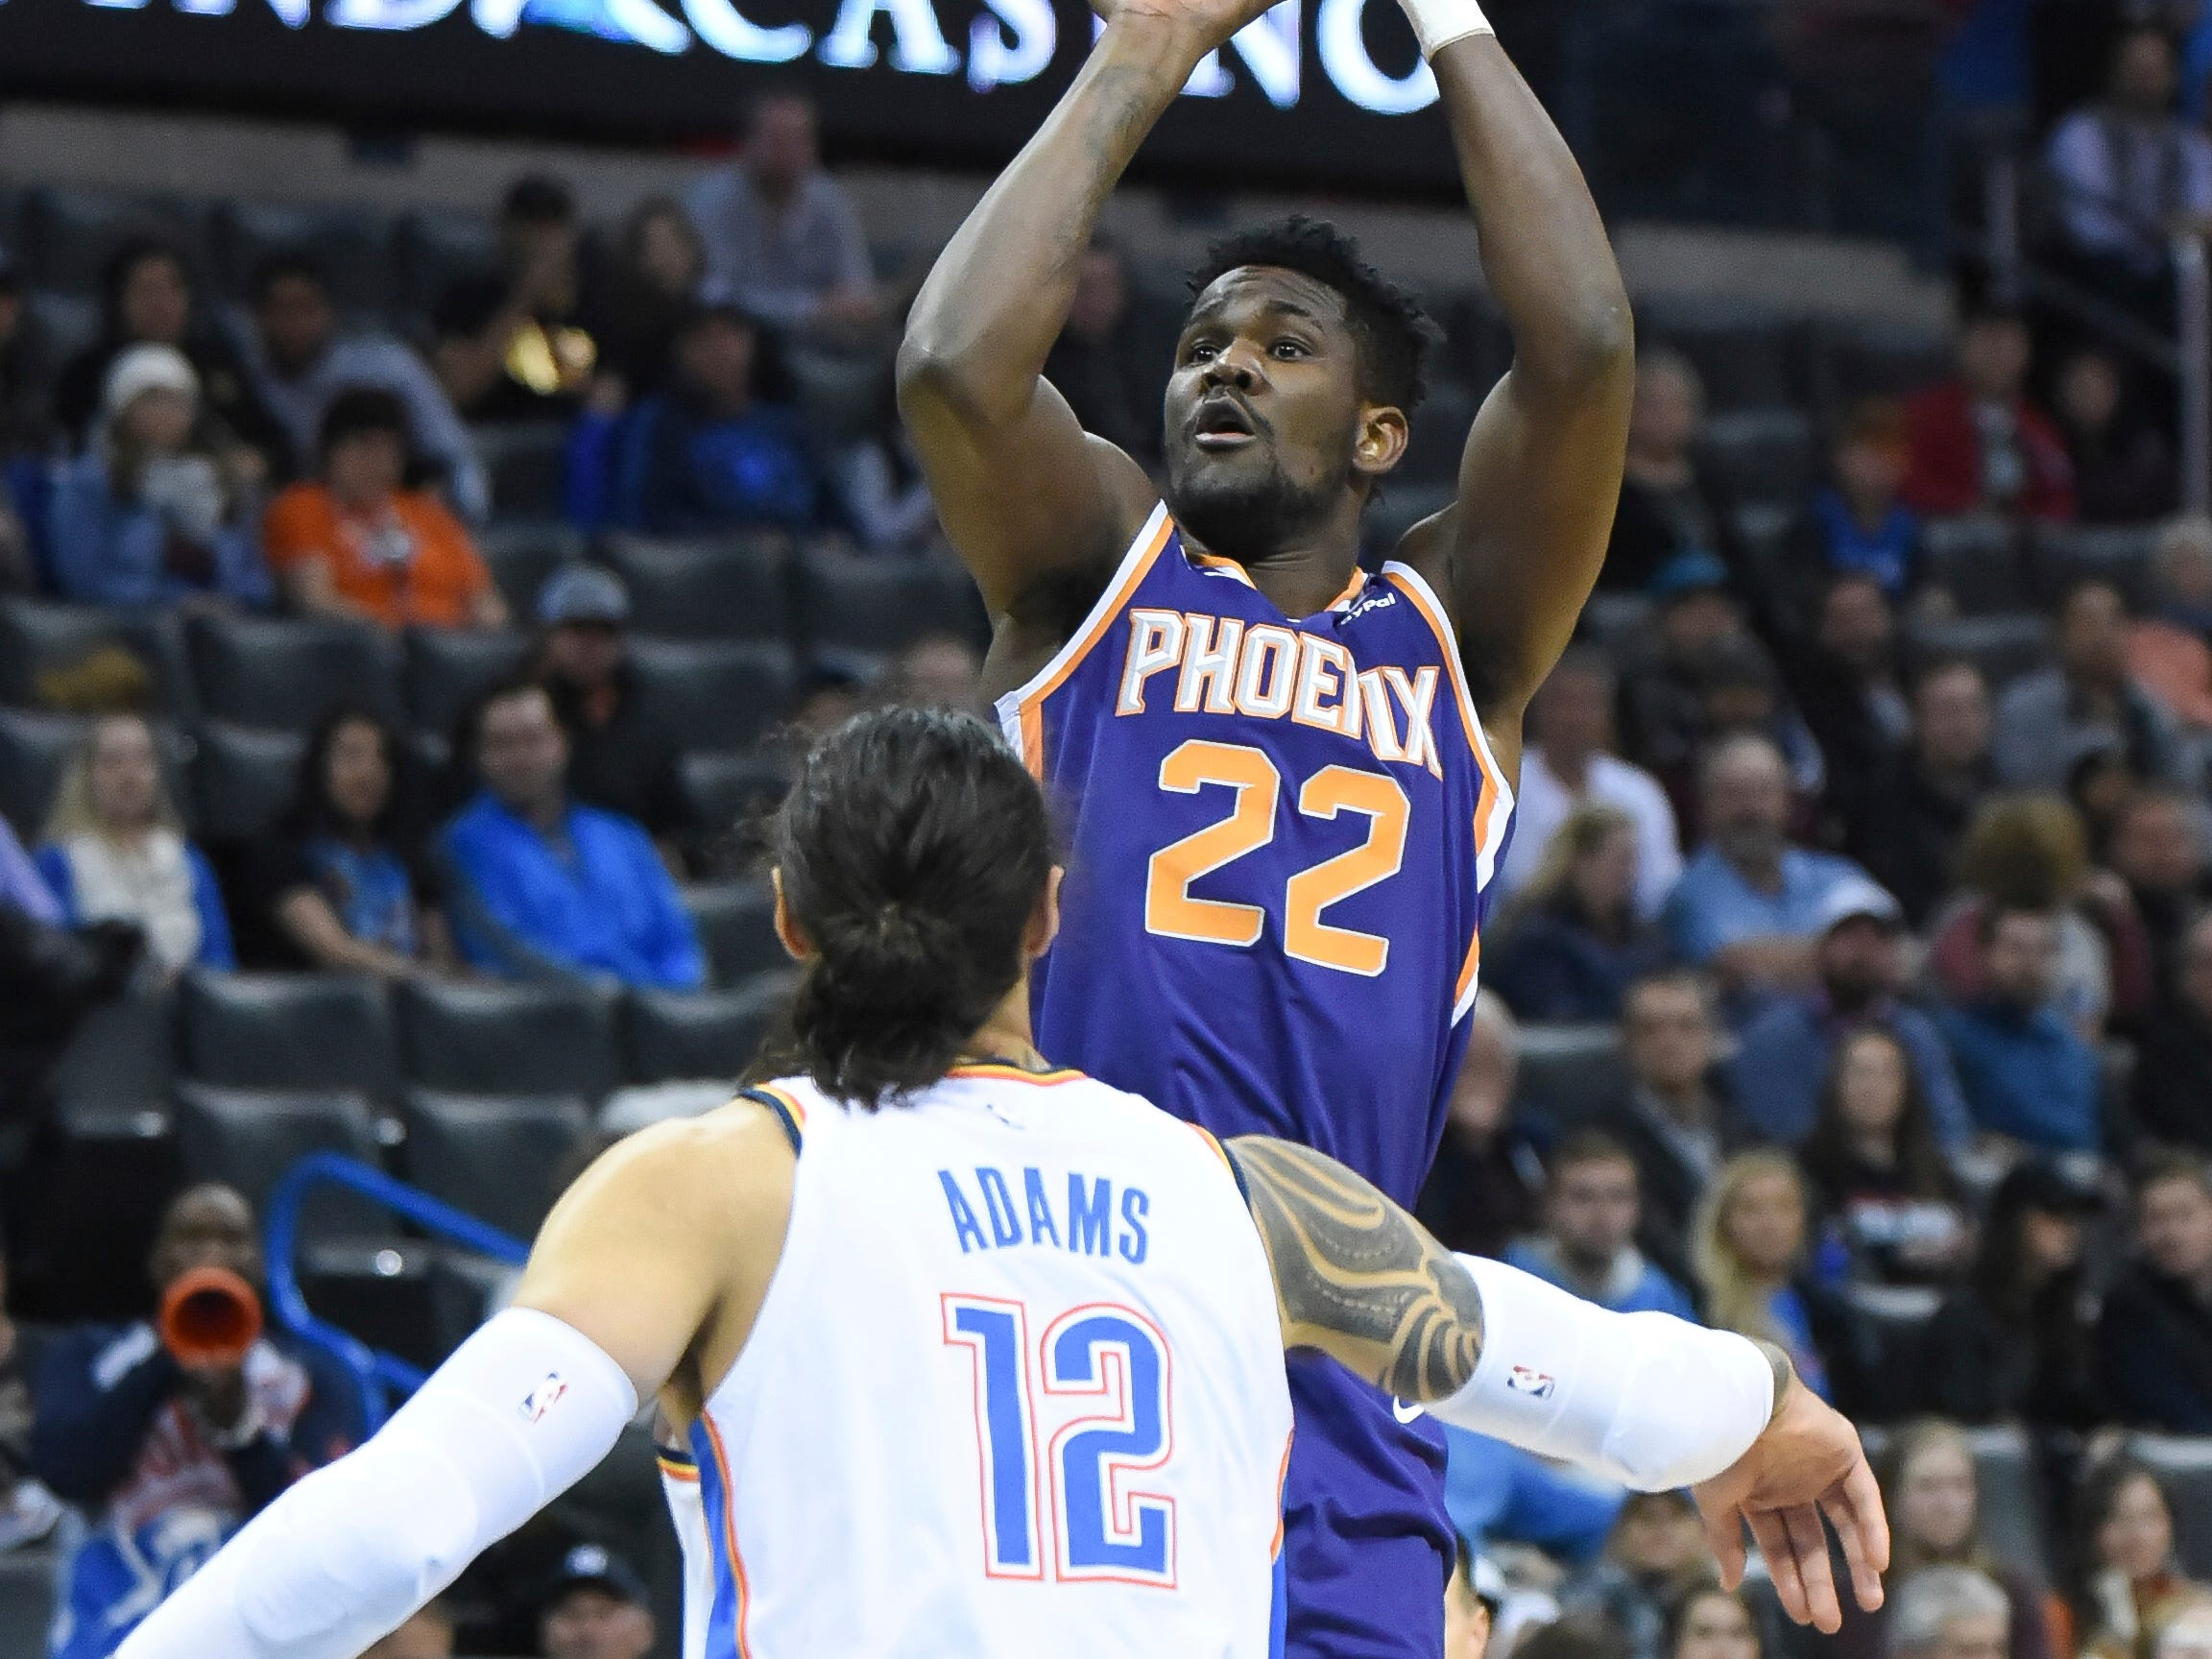 Phoenix Suns center Deandre Ayton (22) shoots the ball over Oklahoma City Thunder center Steven Adams (12) in the first half of an NBA basketball game in Oklahoma City, Monday, Nov. 12, 2018. (AP Photo/Kyle Phillips)